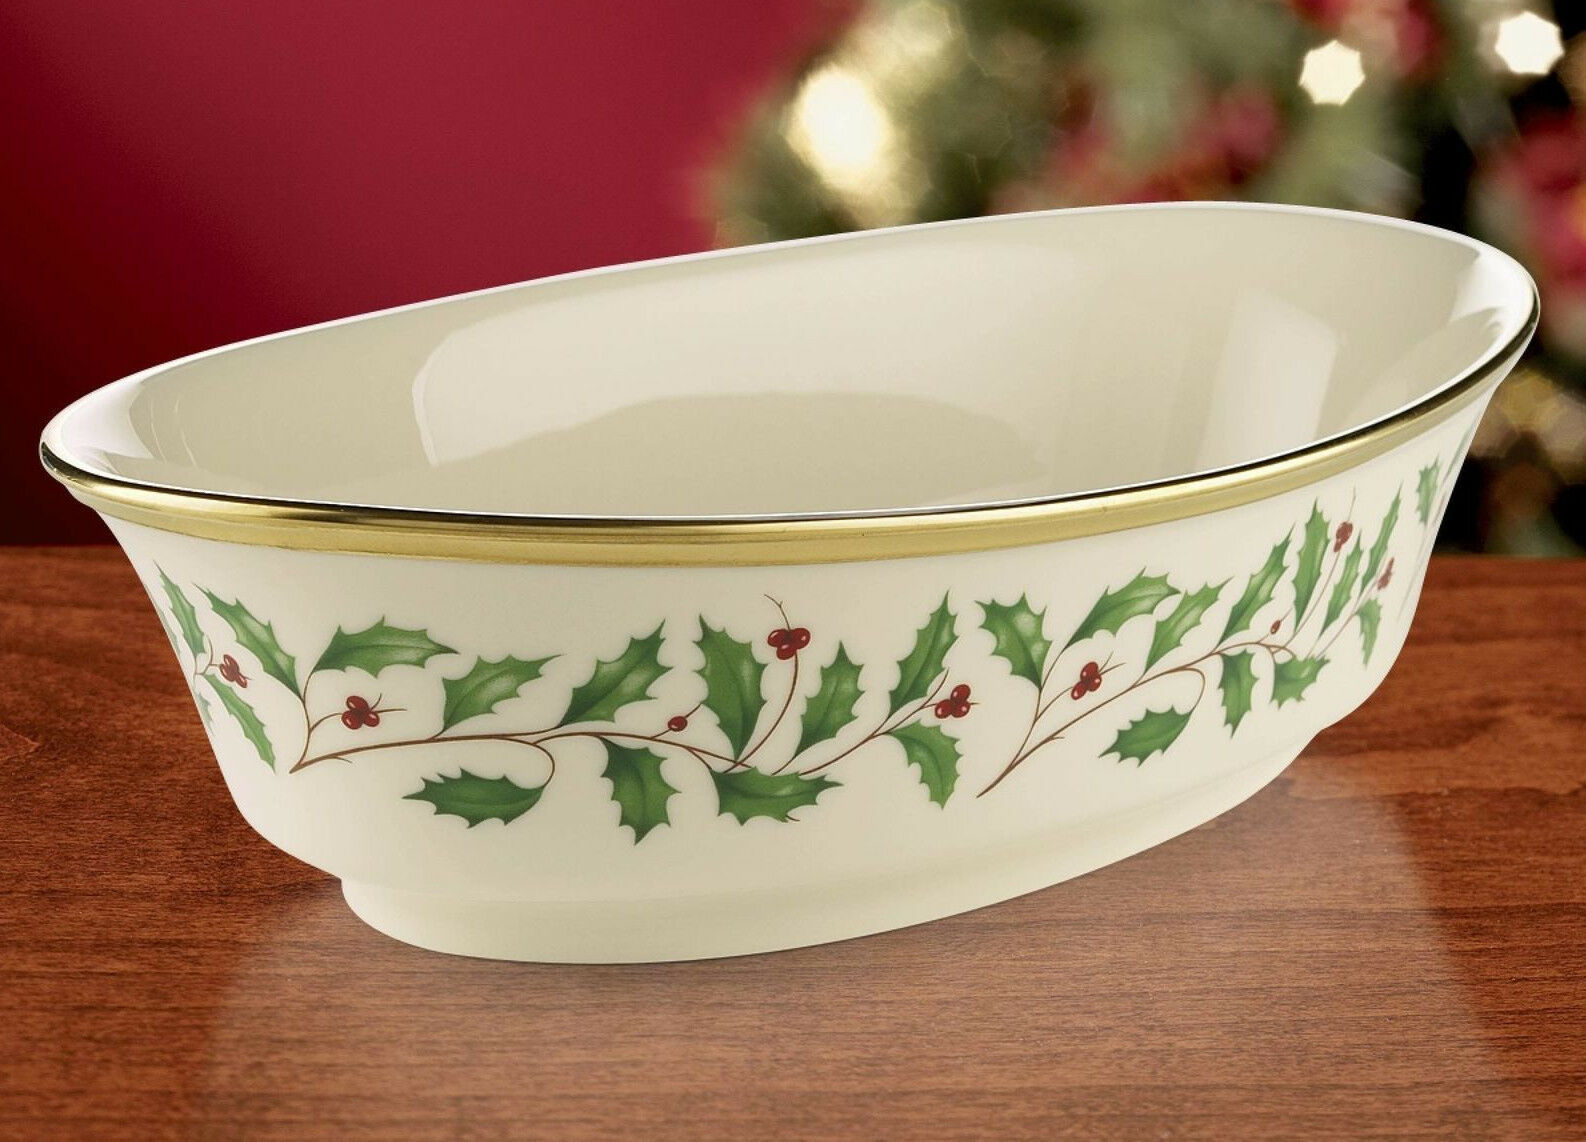 """LENOX HOLIDAY GOLD HOLLY BERRIES OVAL SERVING BOWL S 10"""" - $58.90"""